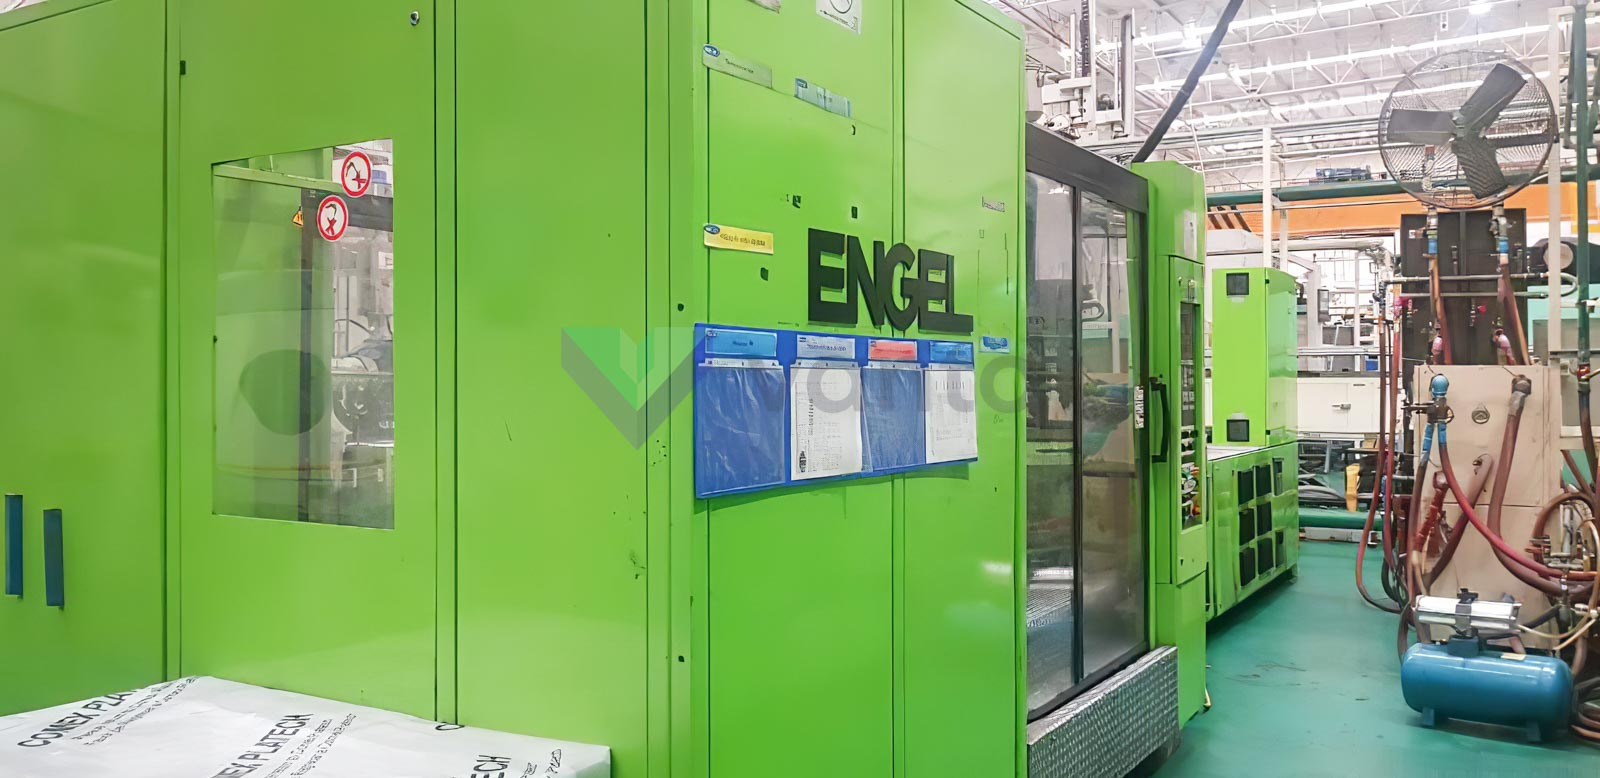 Machine de moulage par injection 900t ENGEL DUO 2550 / 900 (2005) id10367